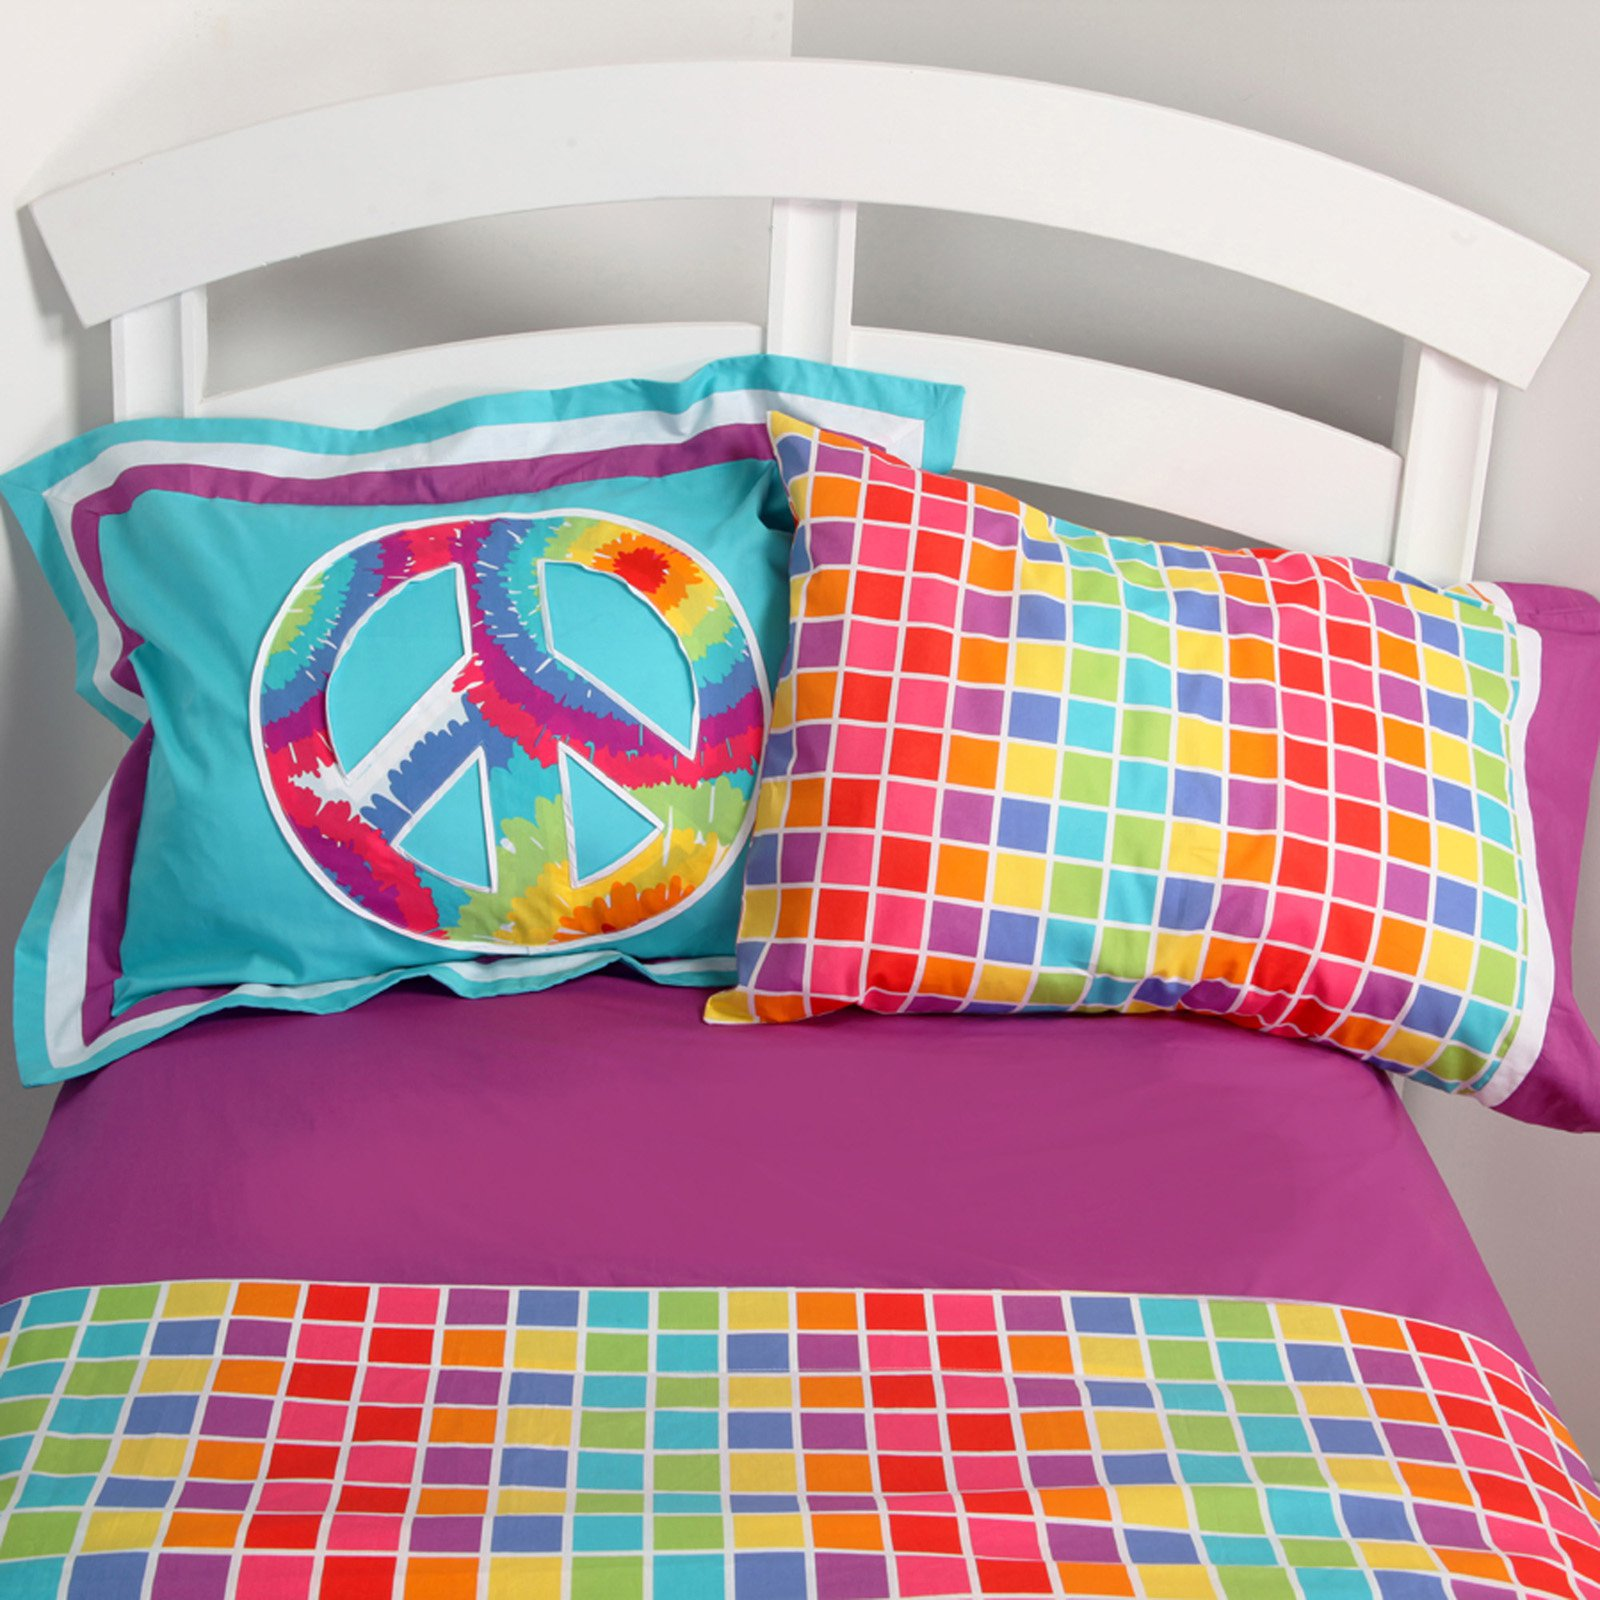 Terrific Tie Dye Sheet Set Walmartcom